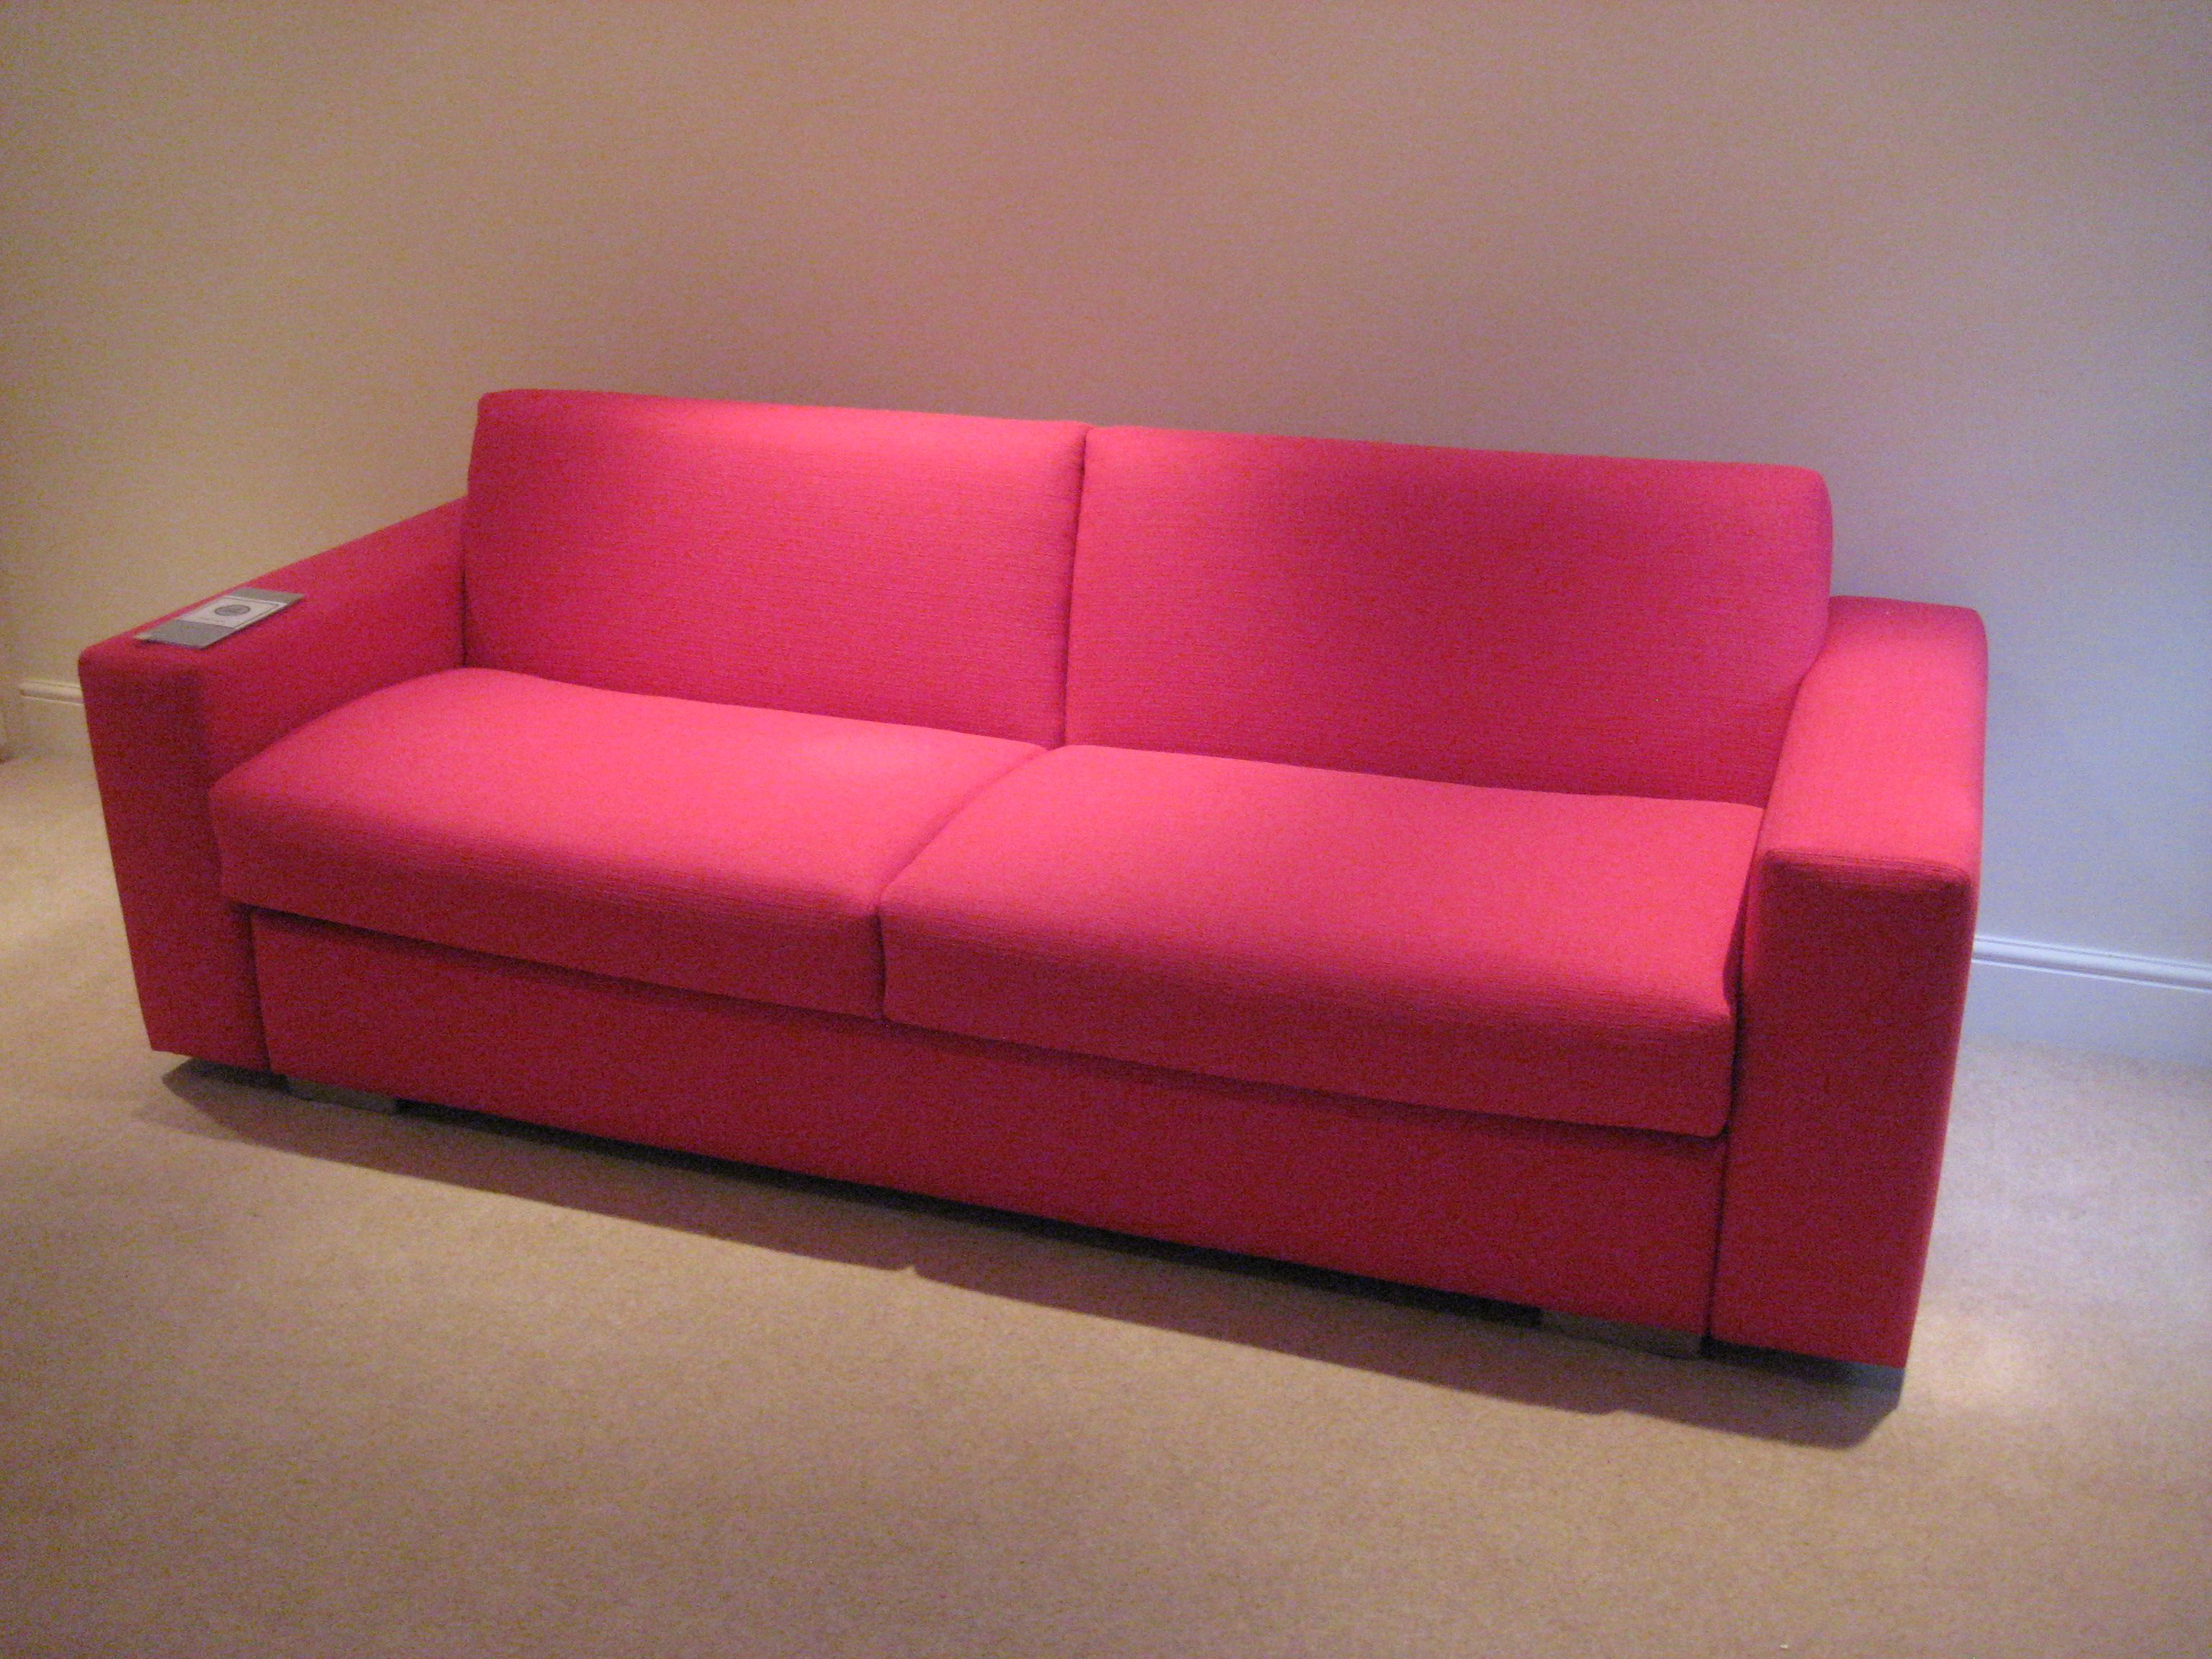 Lario 3 seater sofa bed with 20 cm wide arms measuring 224 for Sofa 1 20 breit